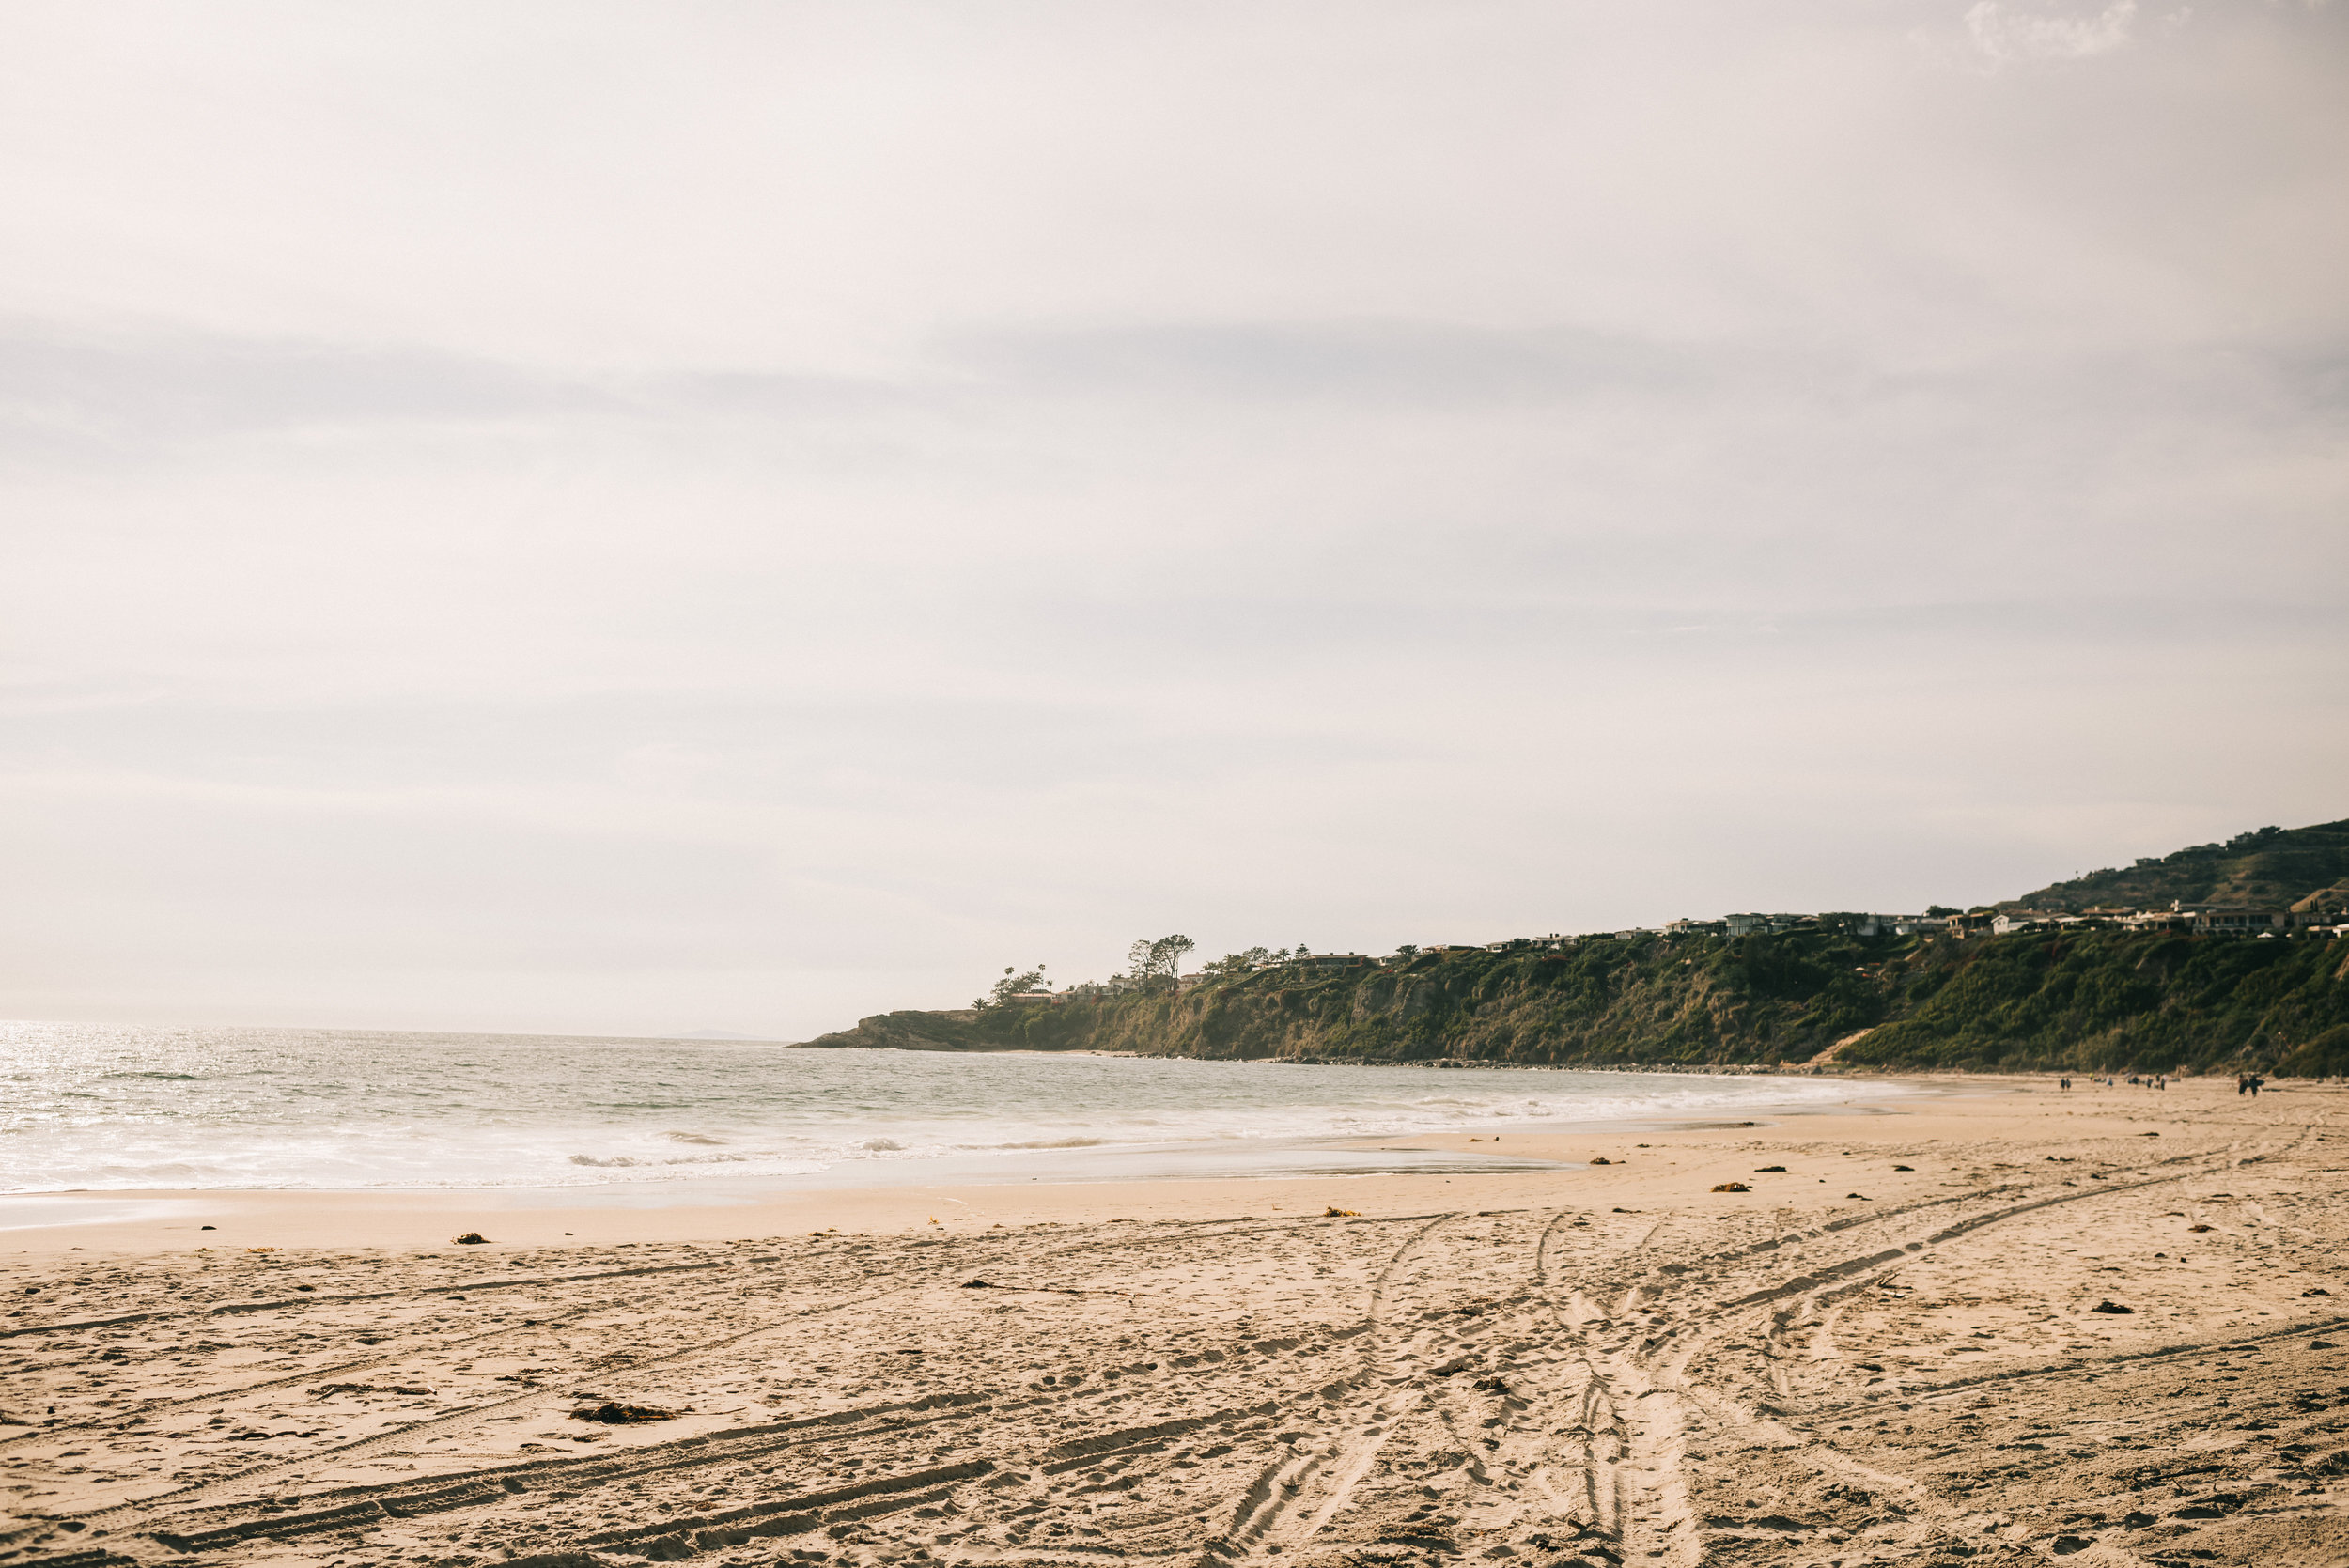 southern california laguna beach salt creek beach los angeles socal boho bay area akland san francisco engagement wedding nontraditional fun creative eclectic photographer magic-374.jpg